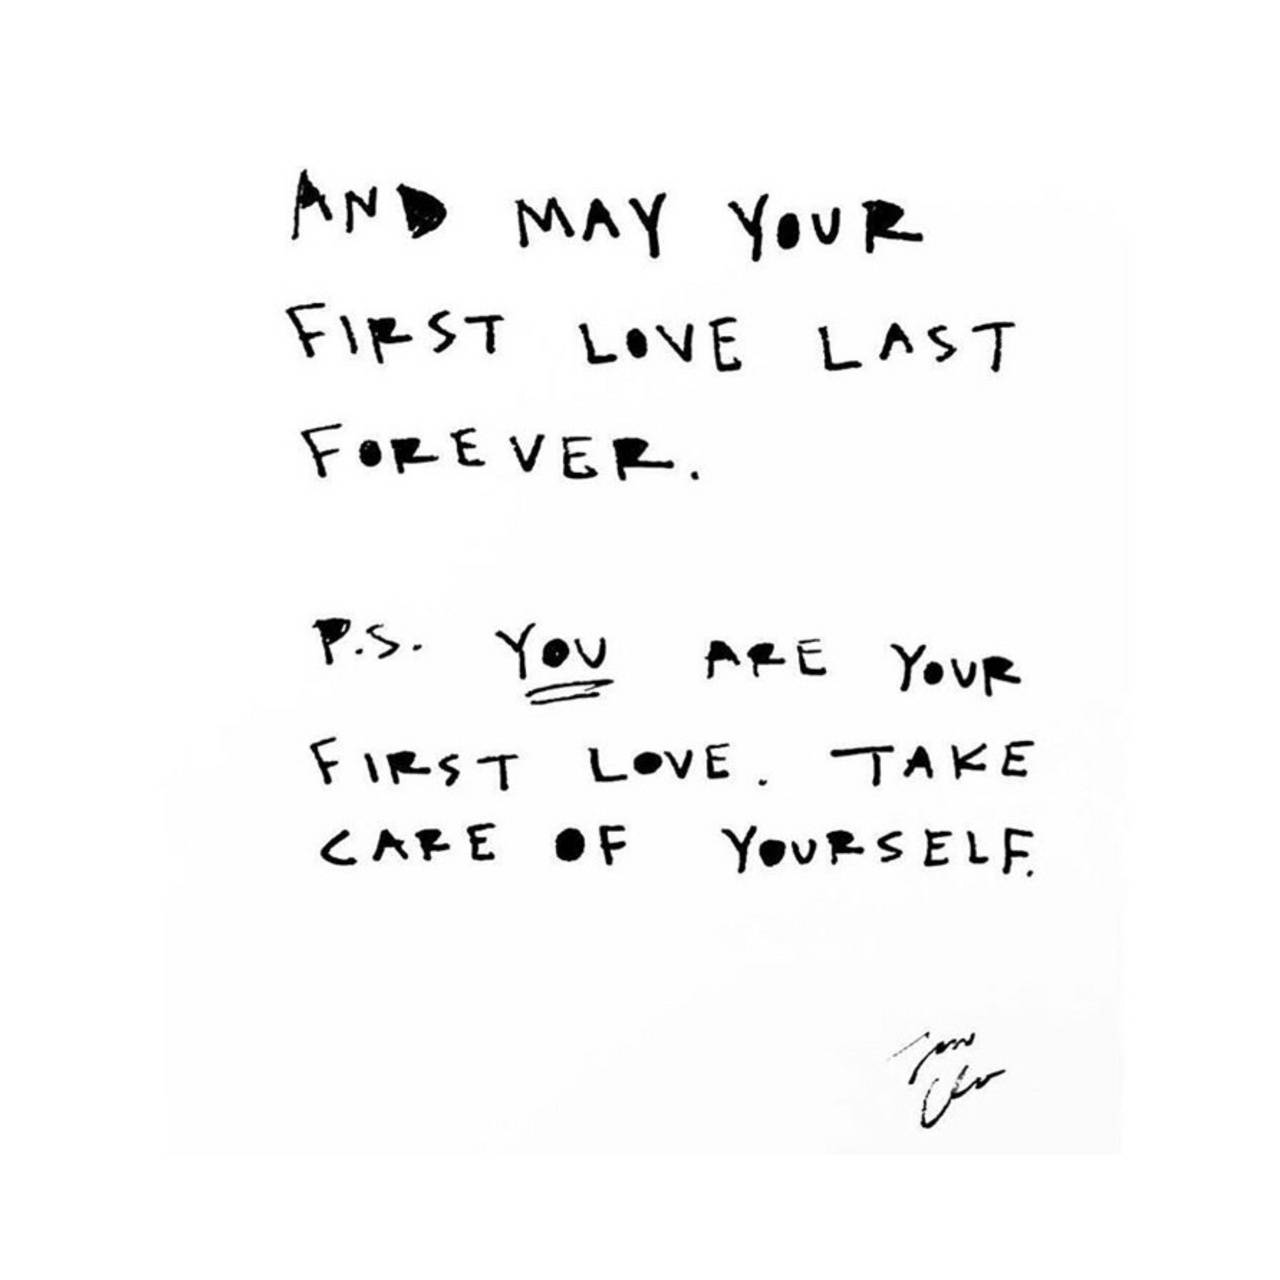 You are your first